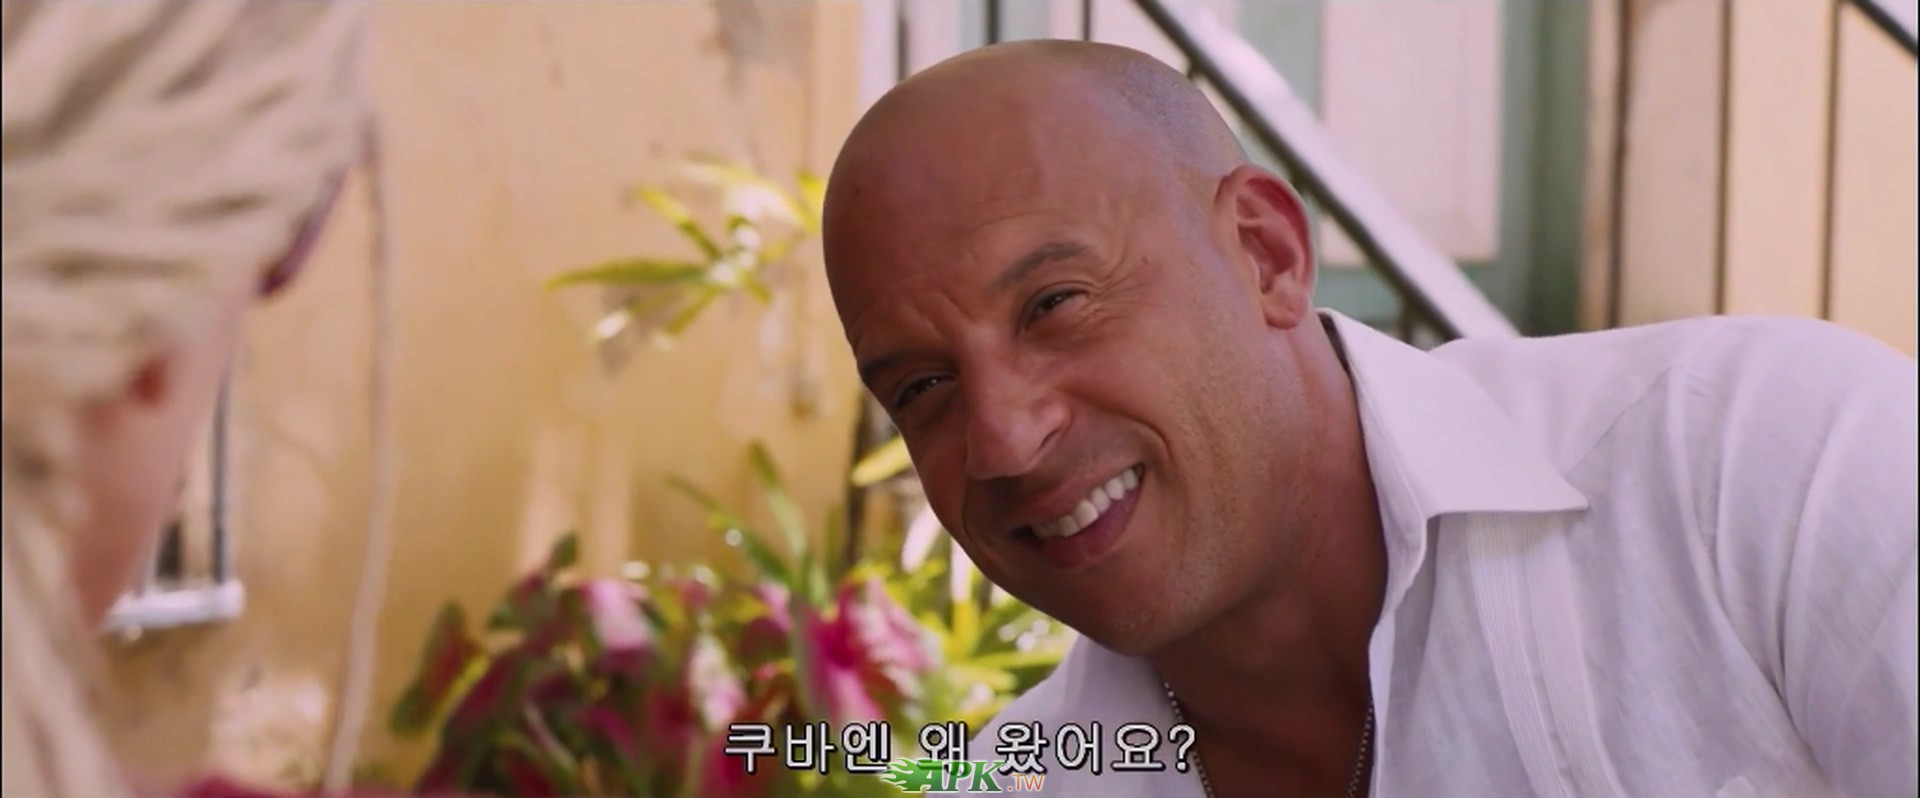 The.Fate.of.the.Furious.2017.1080p.KORSUB.HDRip.x264.AAC2.0-STUTTERSHIT.mp4_2017.jpg